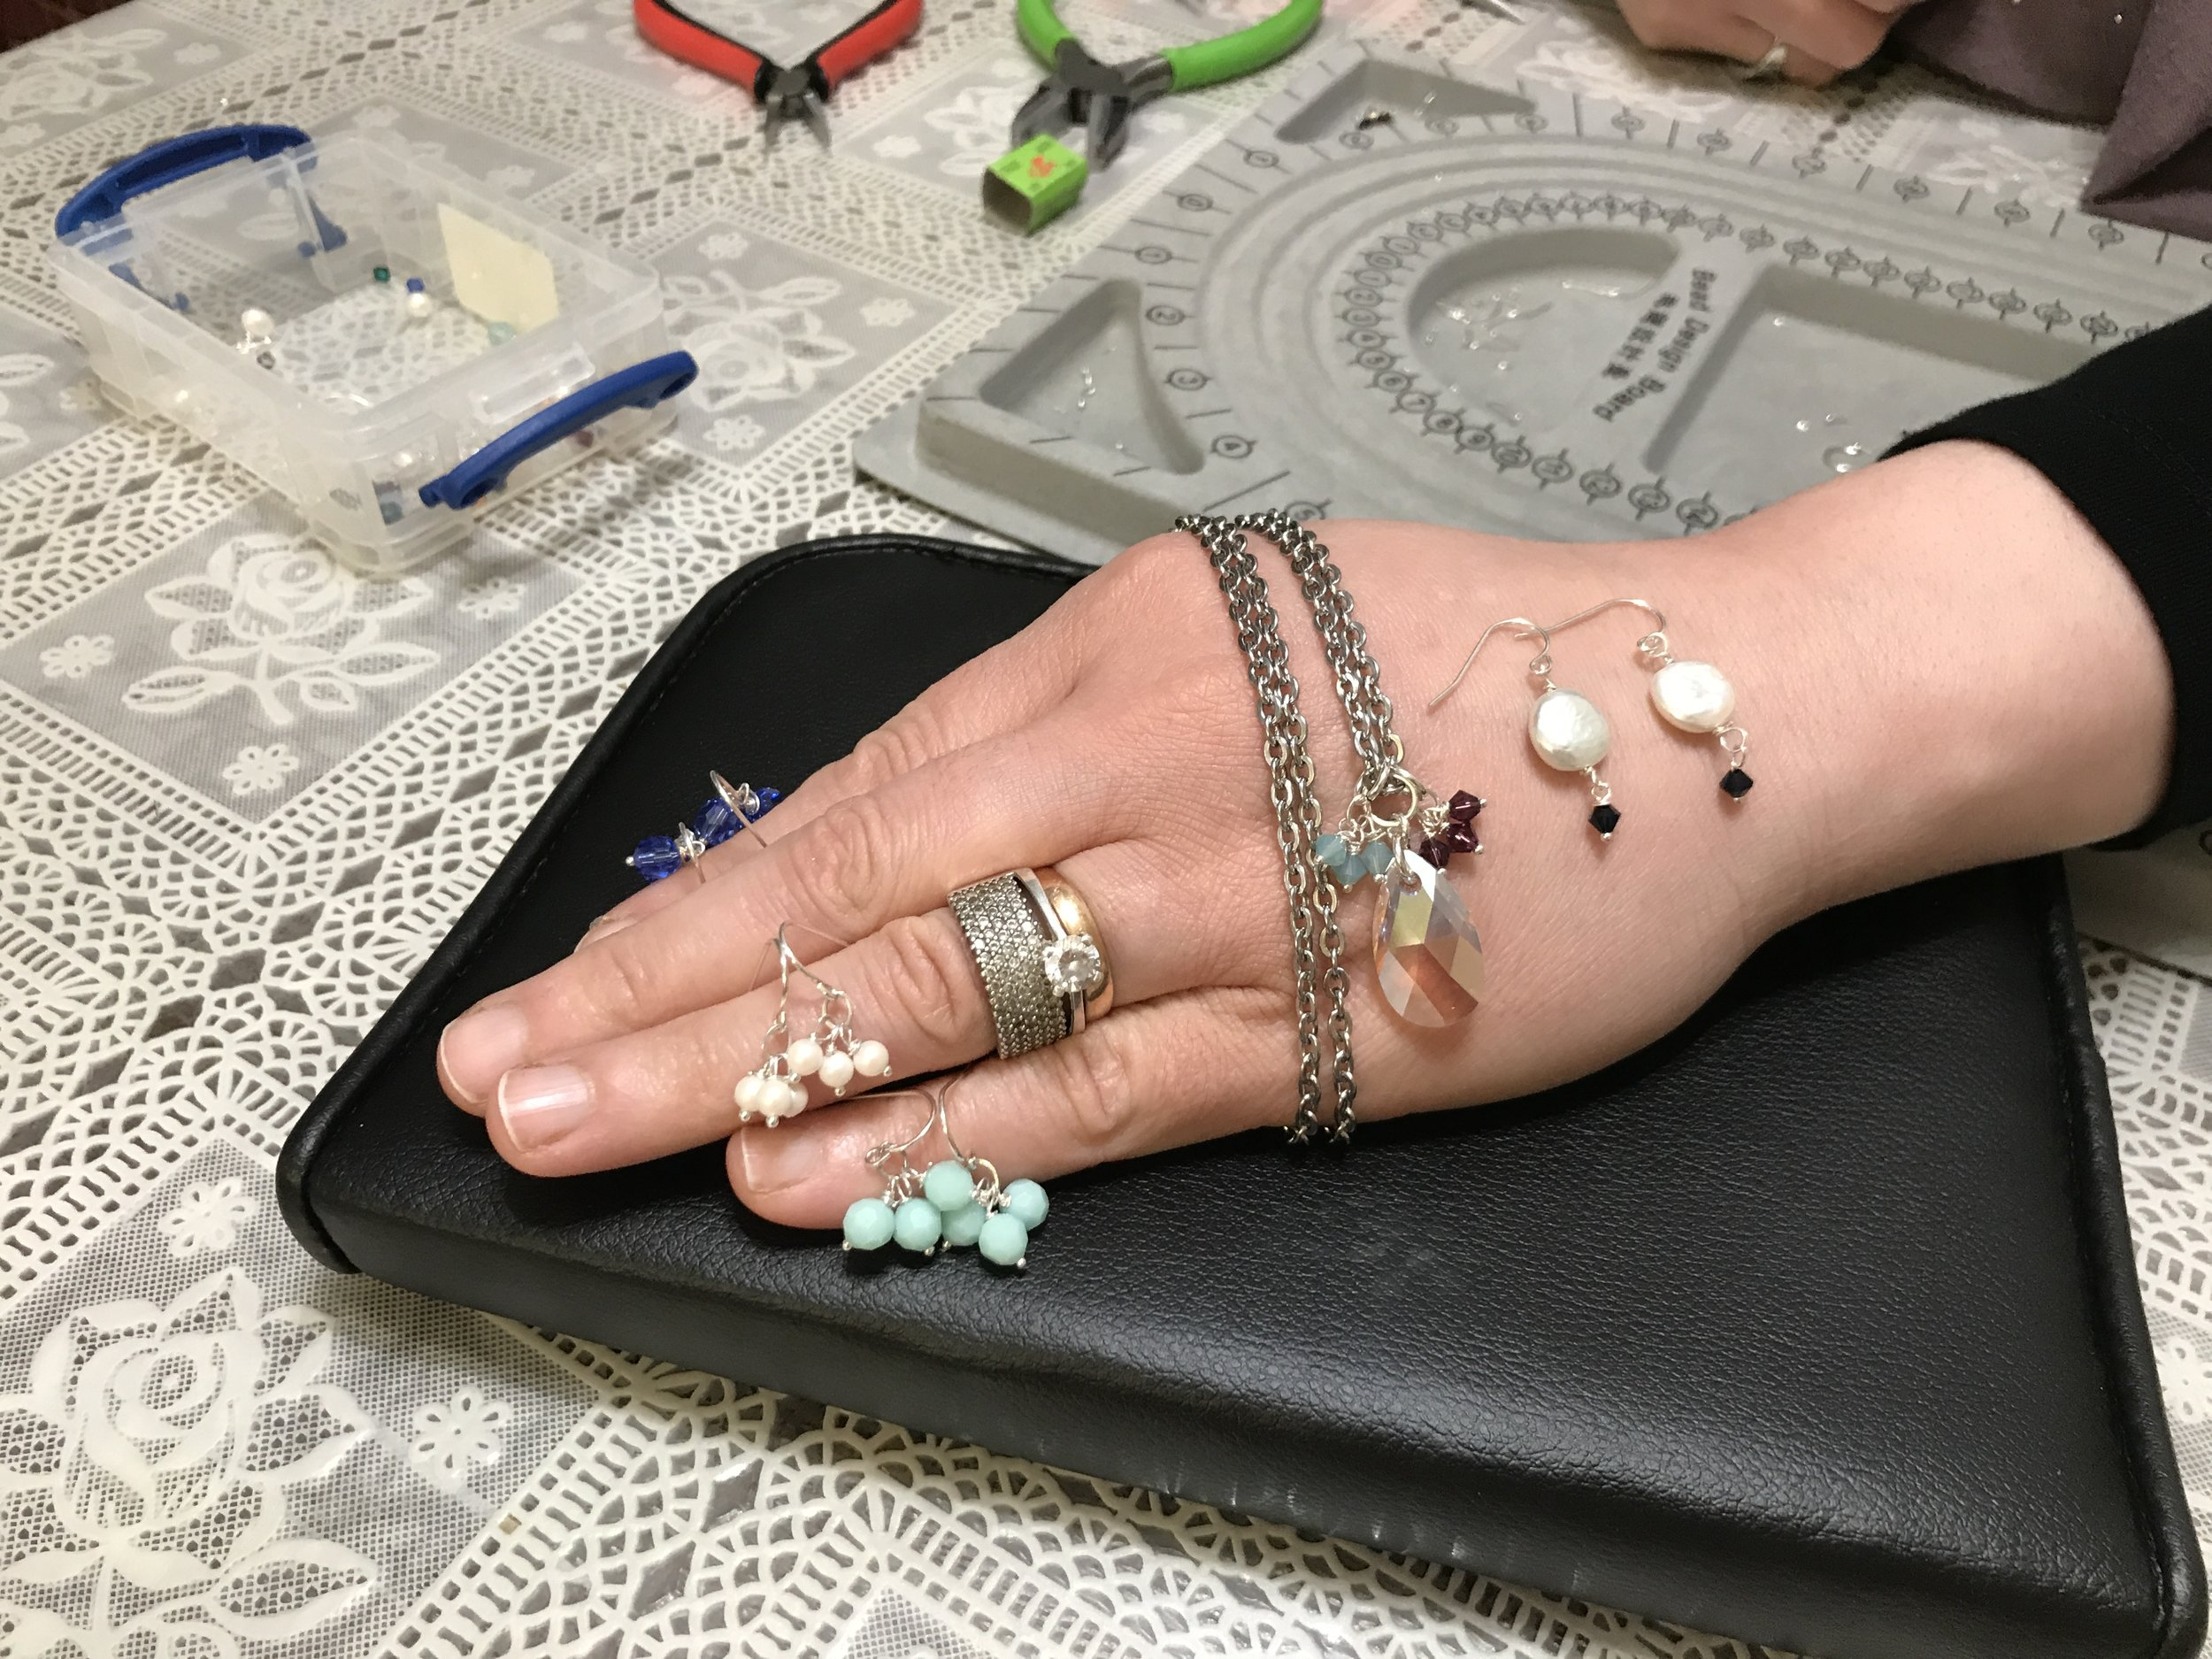 jewelry_made_by_syrian_refugees.jpg